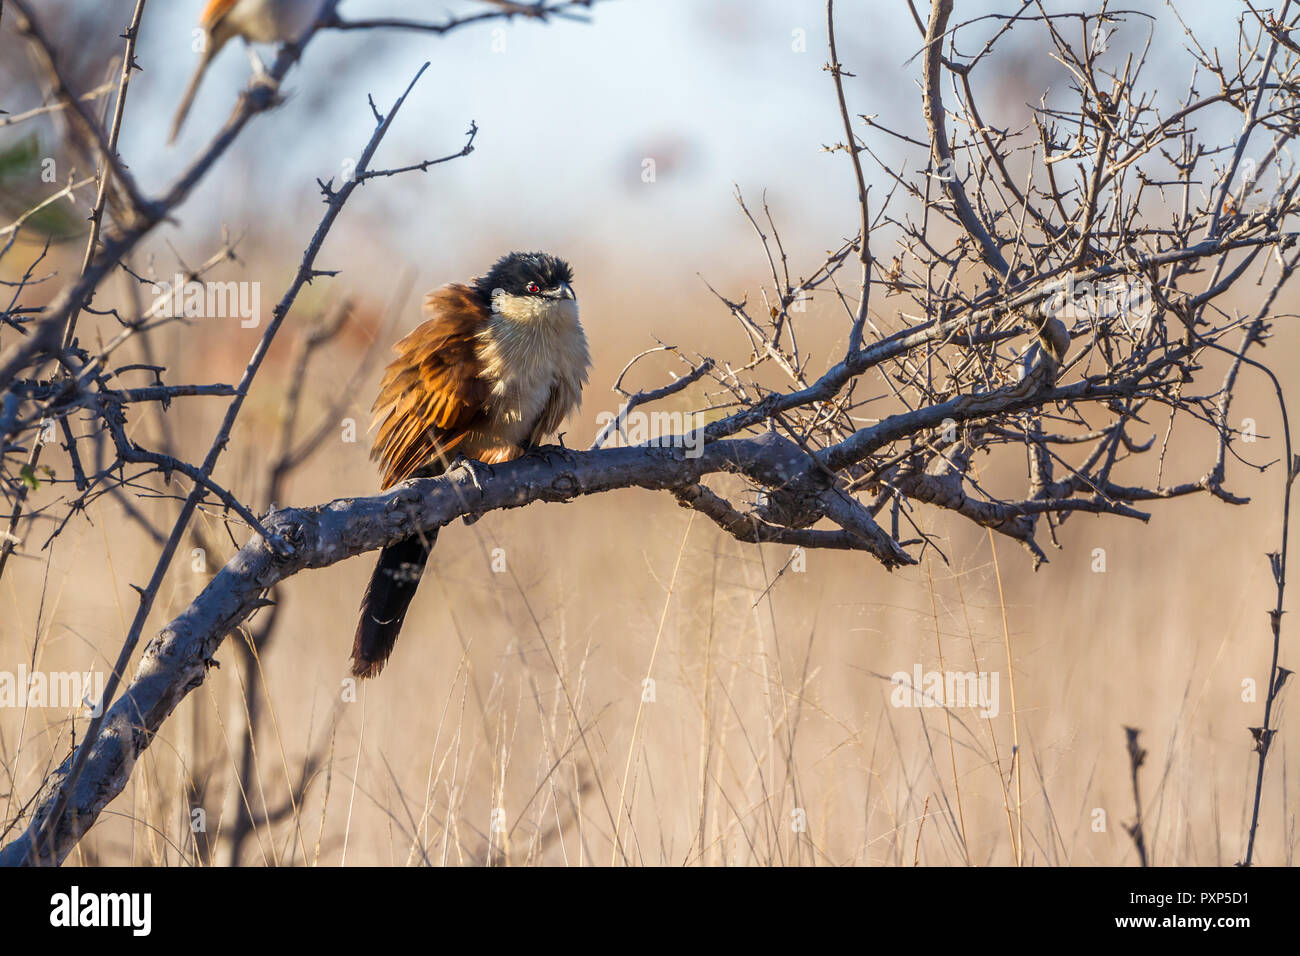 Burchell Coucal in Kruger National park, South Africa ; Specie Centropus burchellii family of Cuculidae - Stock Image